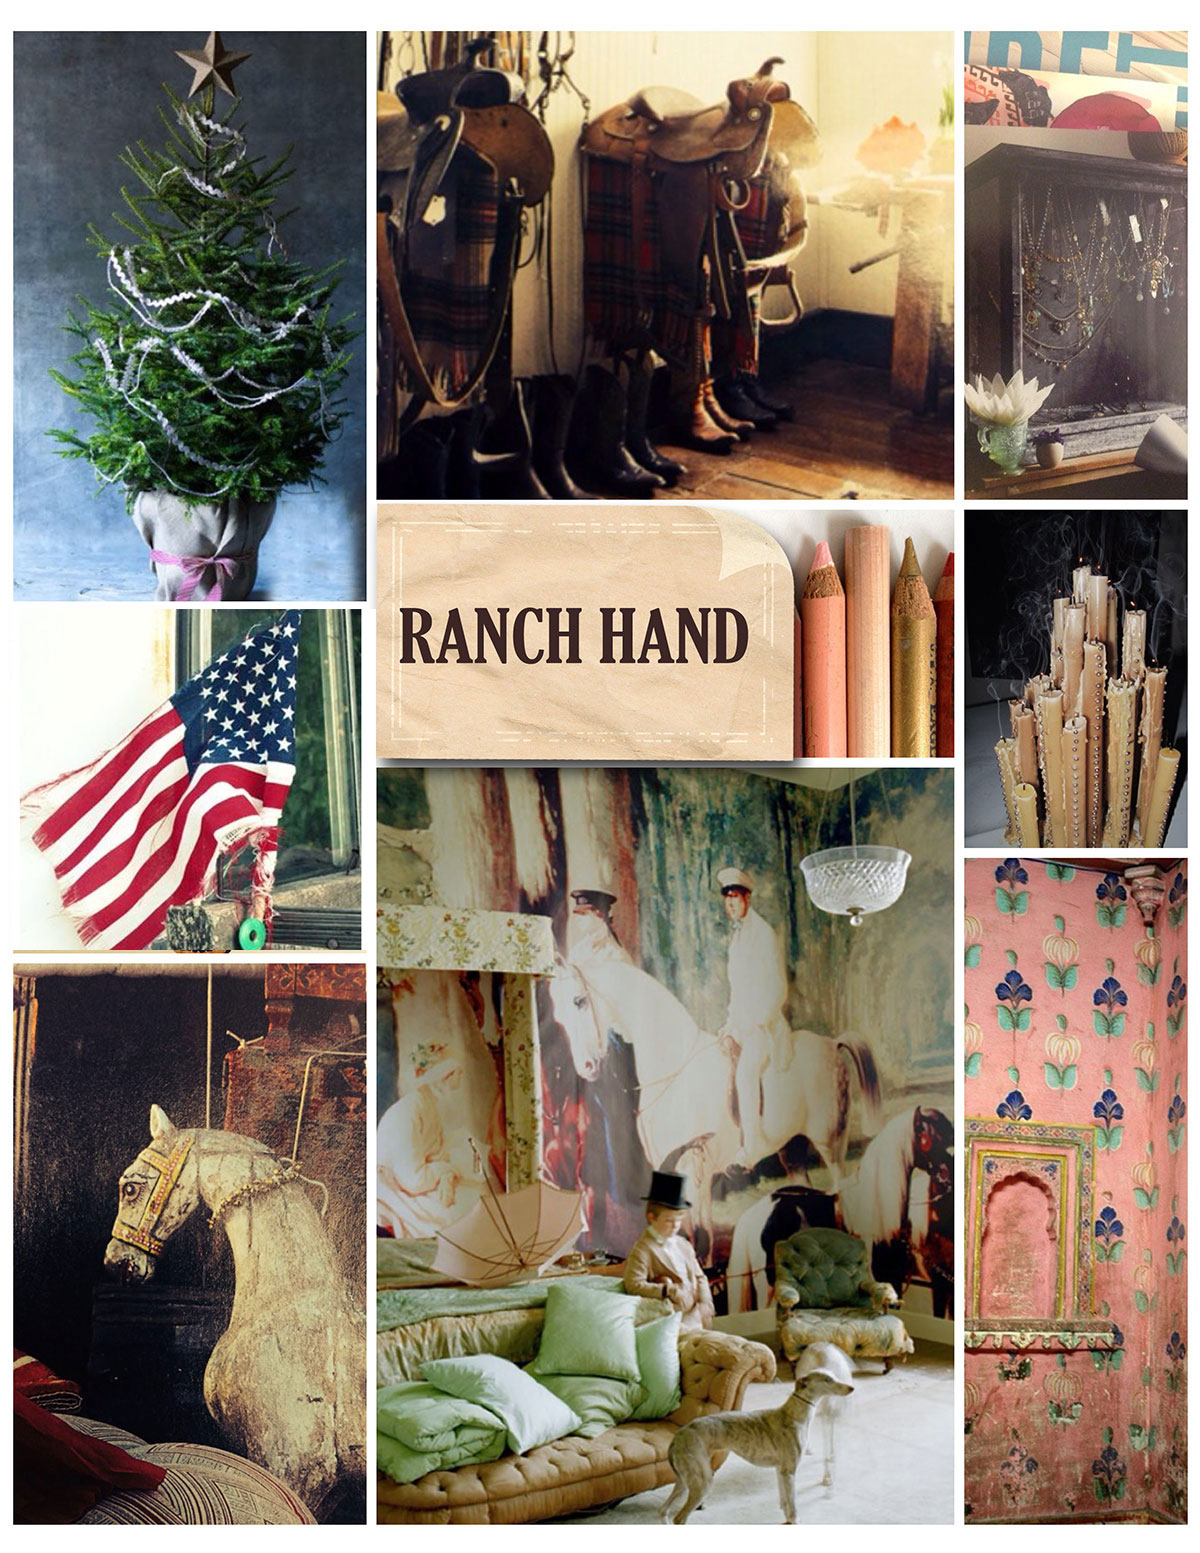 Ranch Hand Design Inspiration Home Decor Country Christmas Americana